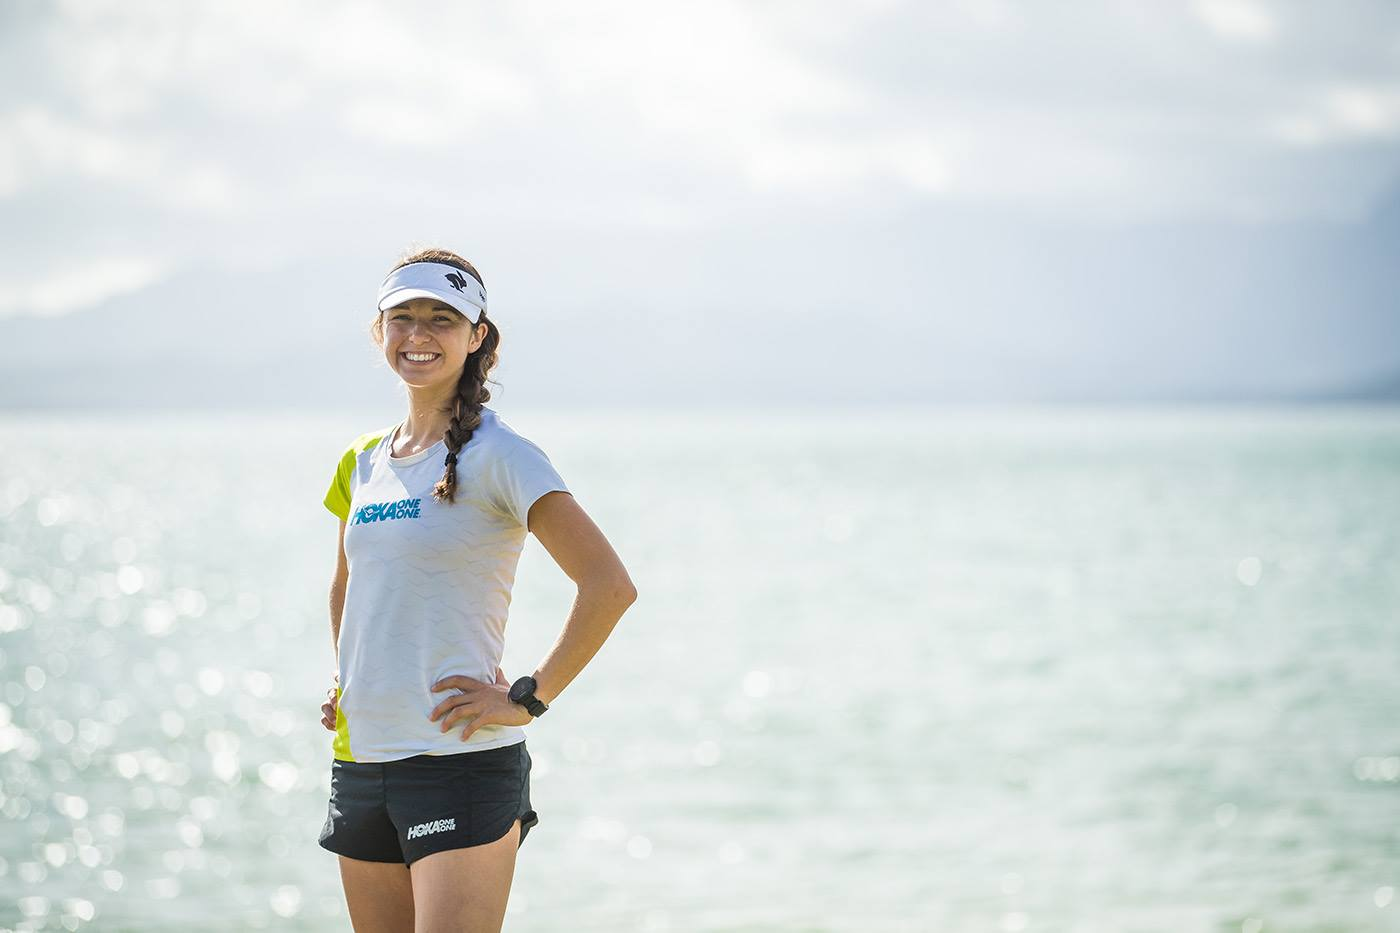 Dani Moreno has found success as a professional trail runner. Courtesy photo.